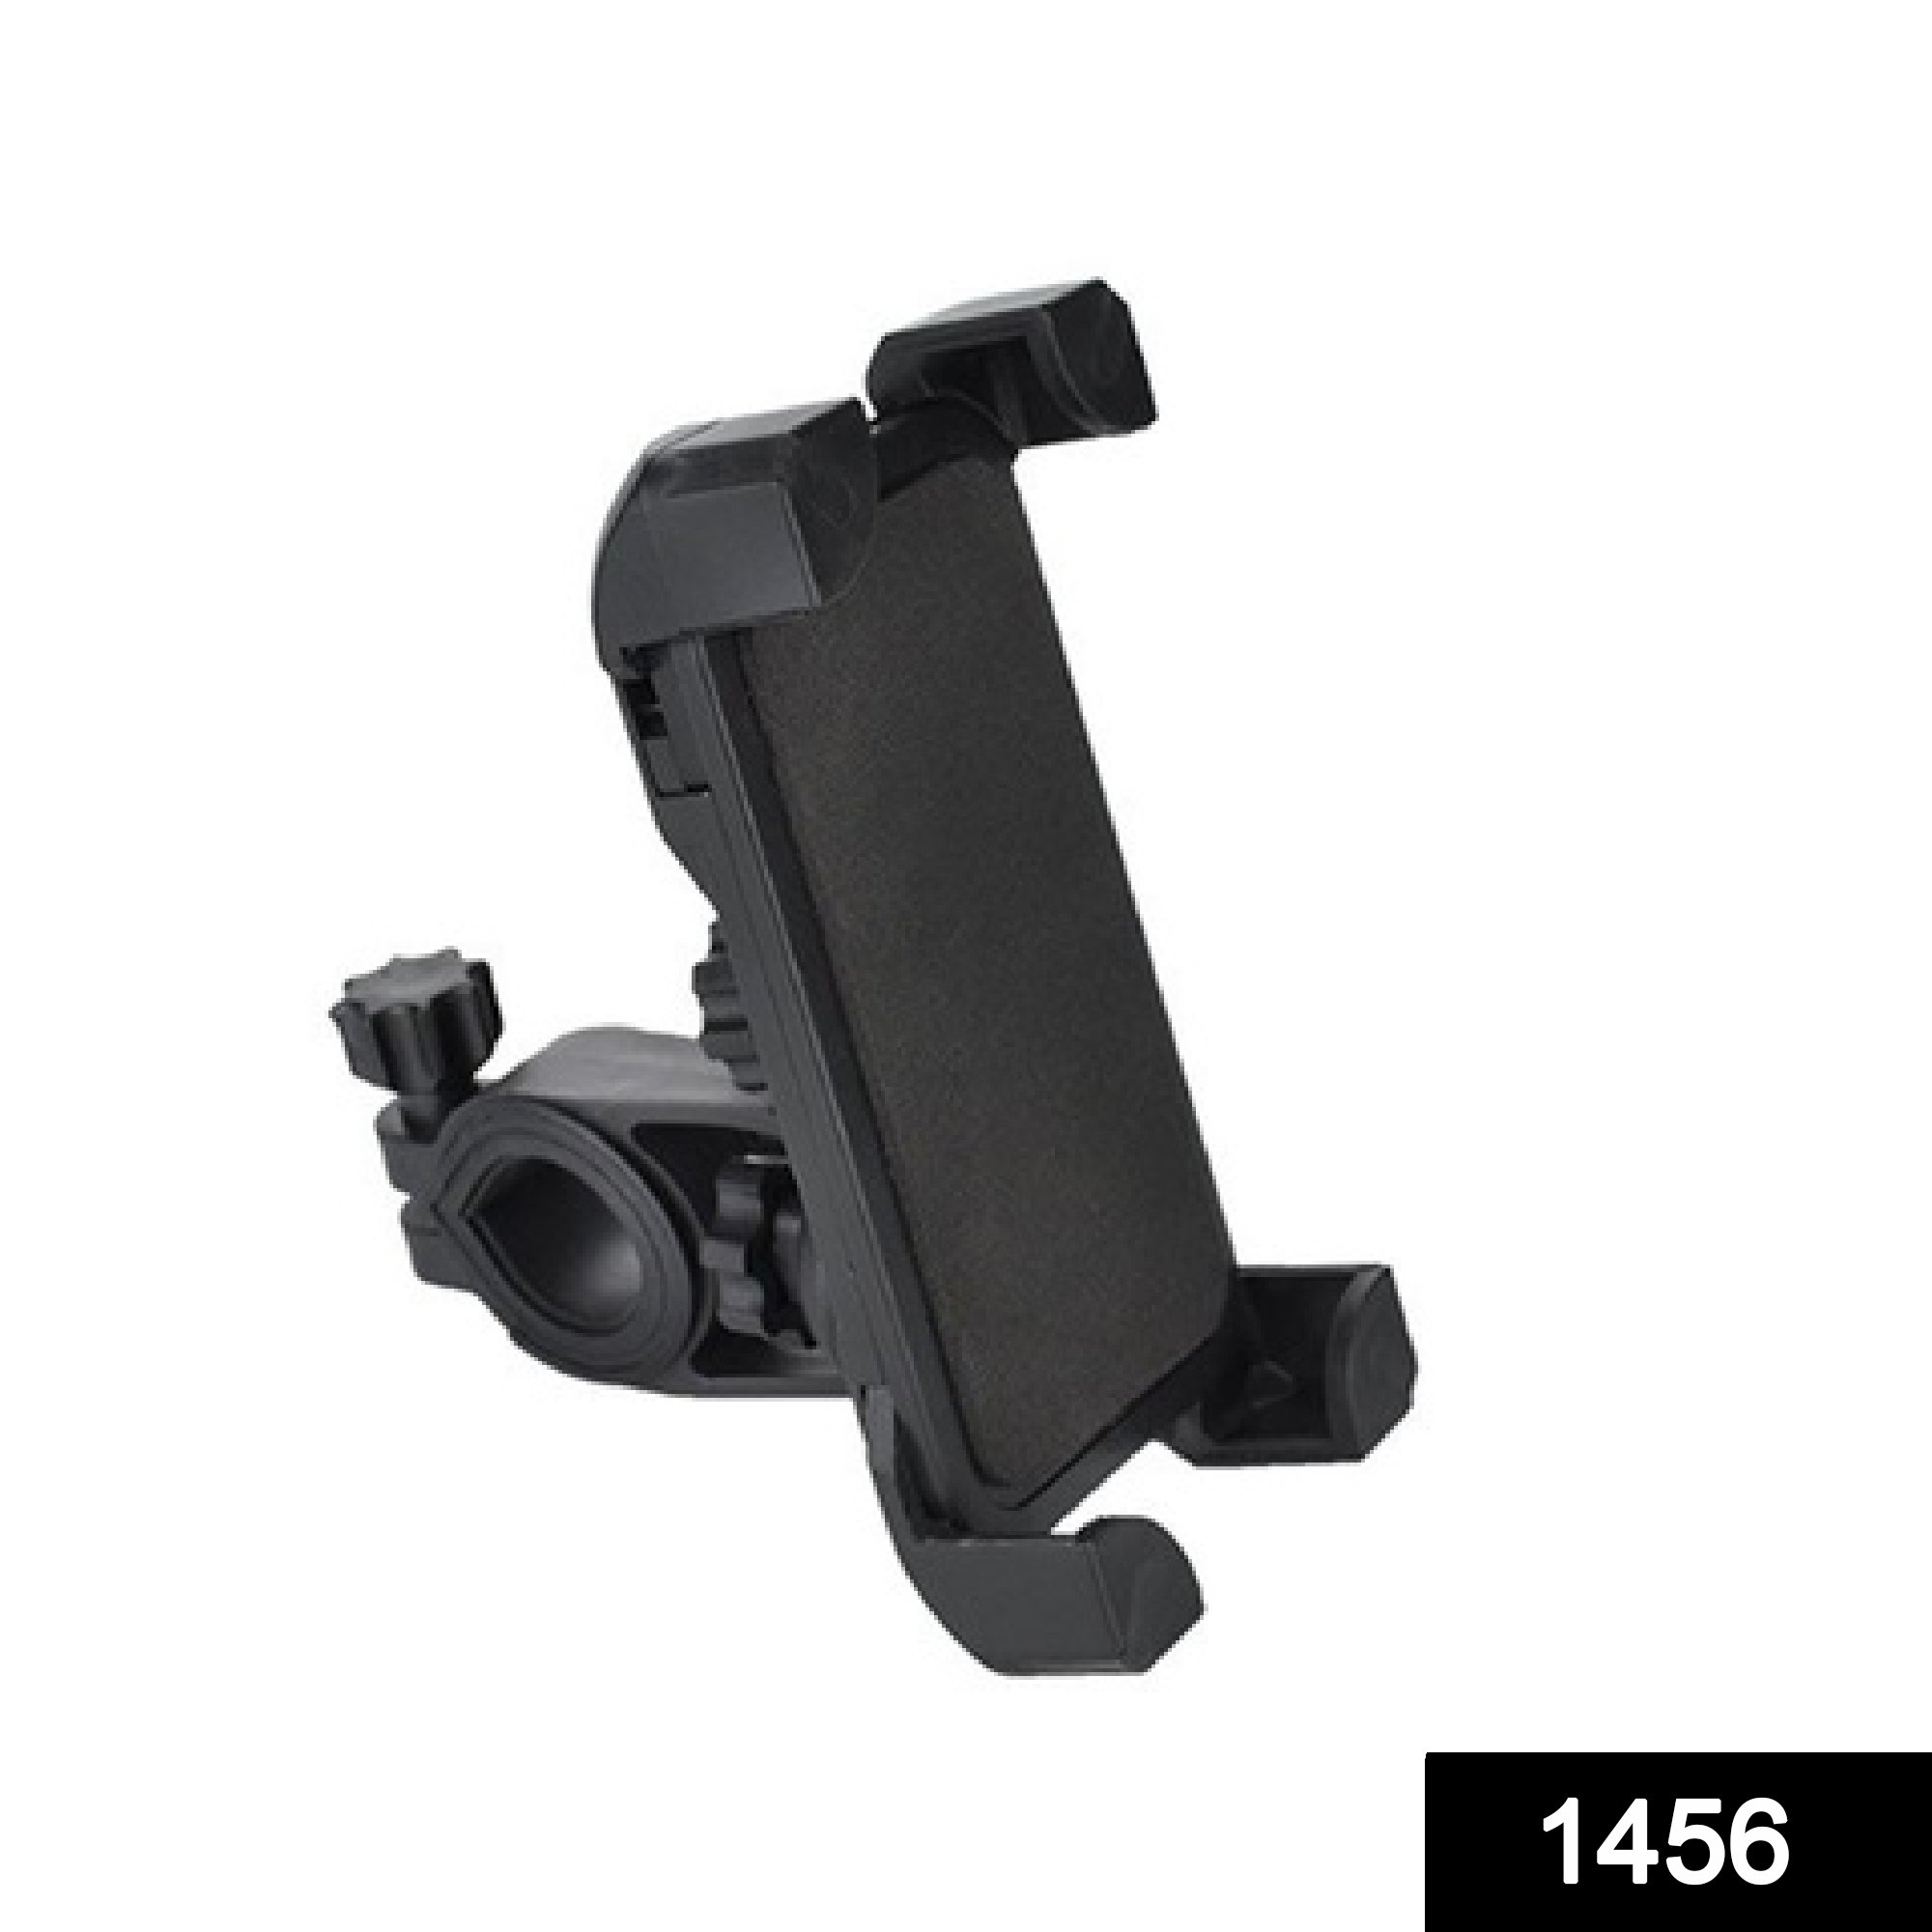 1456 Bike Phone Mount Anti Shake and Stable Cradle Clamp with 360° Rotation -